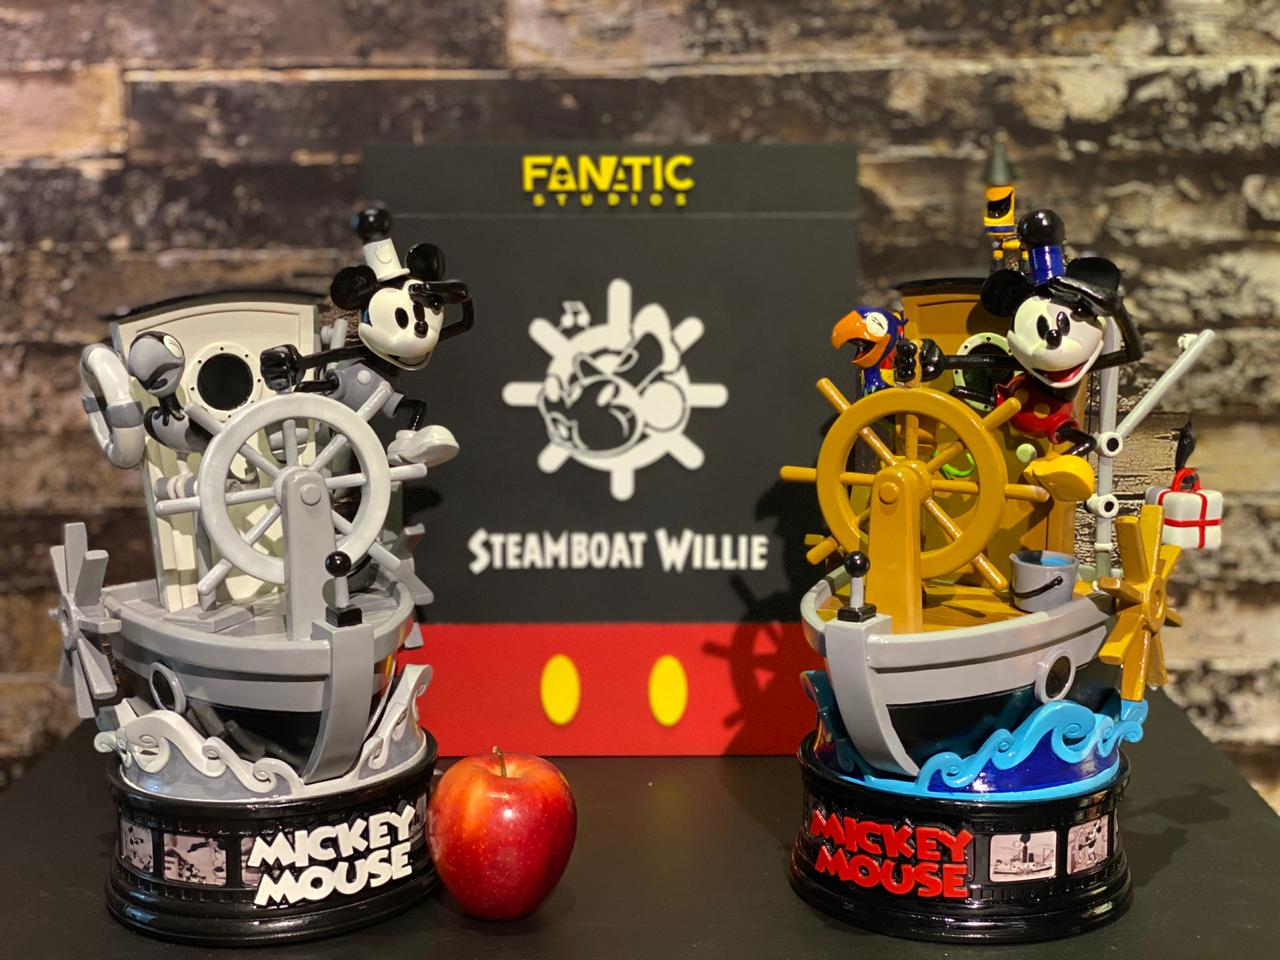 Estátua Mickey Mouse SteamBoat Willie Exclusive Edition Escala 1/10 - Fanatic Studios